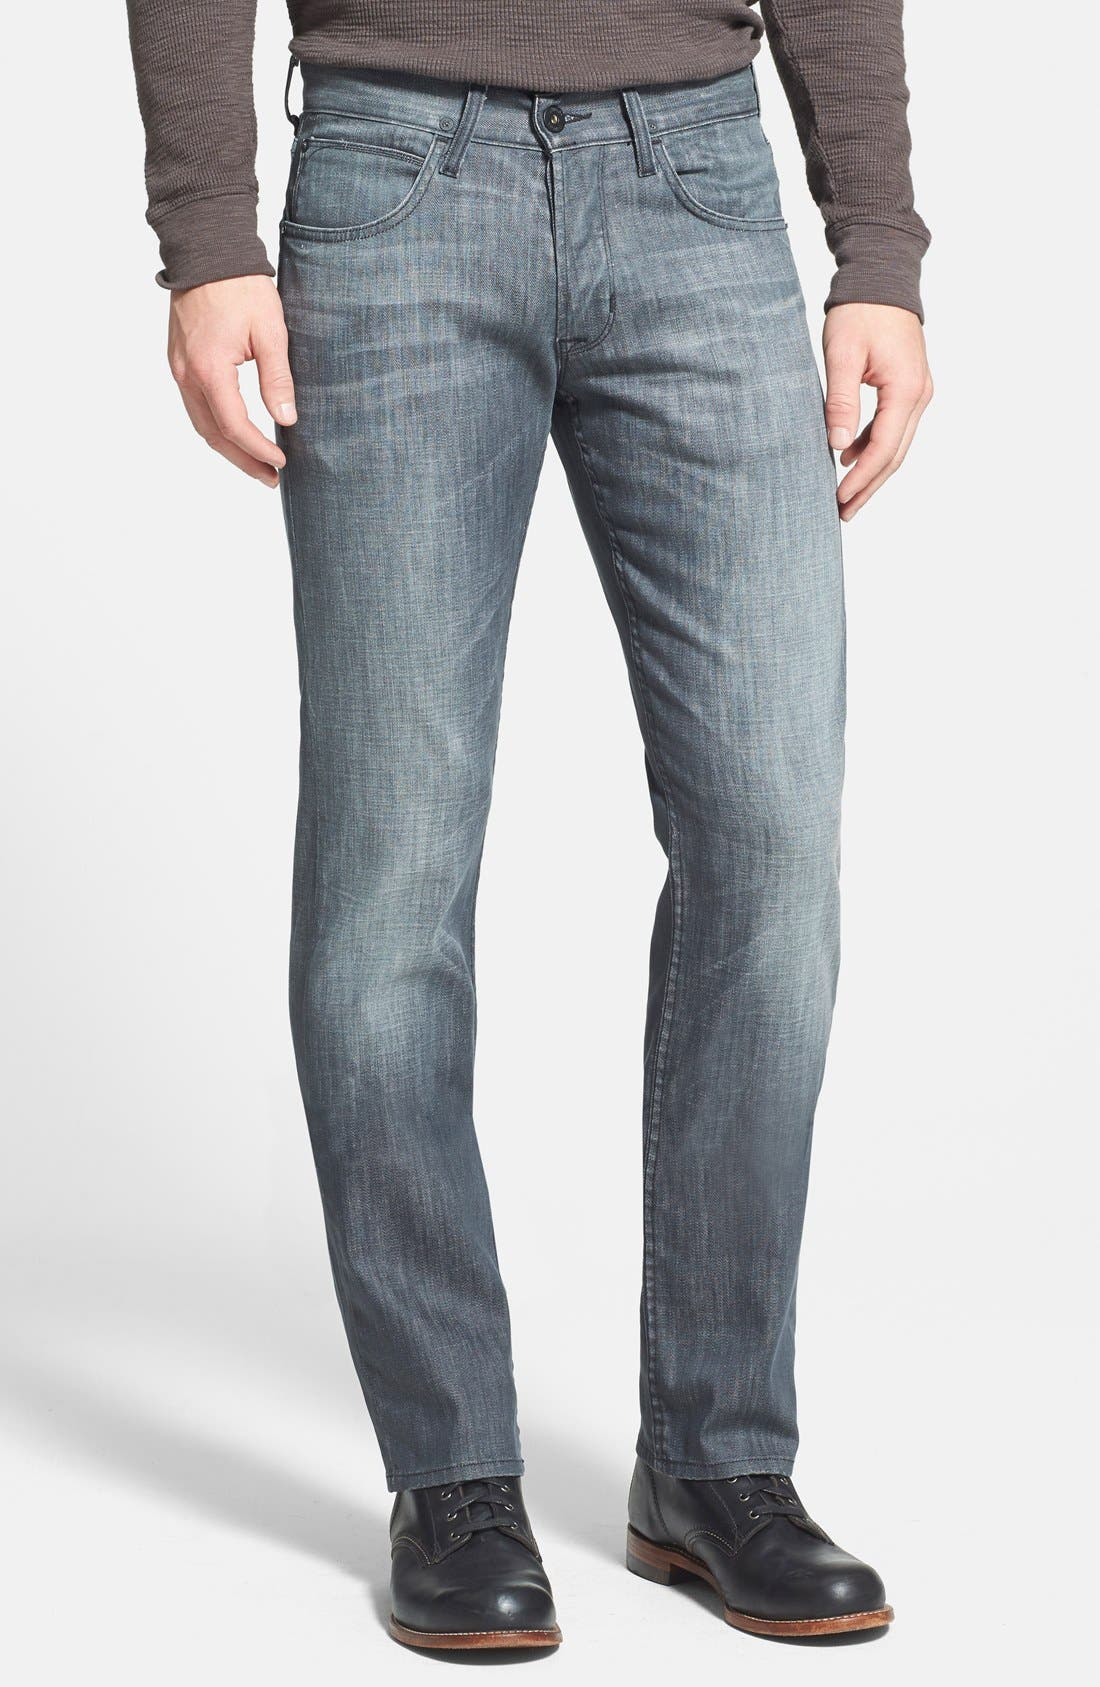 Alternate Image 1 Selected - Hudson Jeans 'Byron' Straight Leg Jeans (Virage)